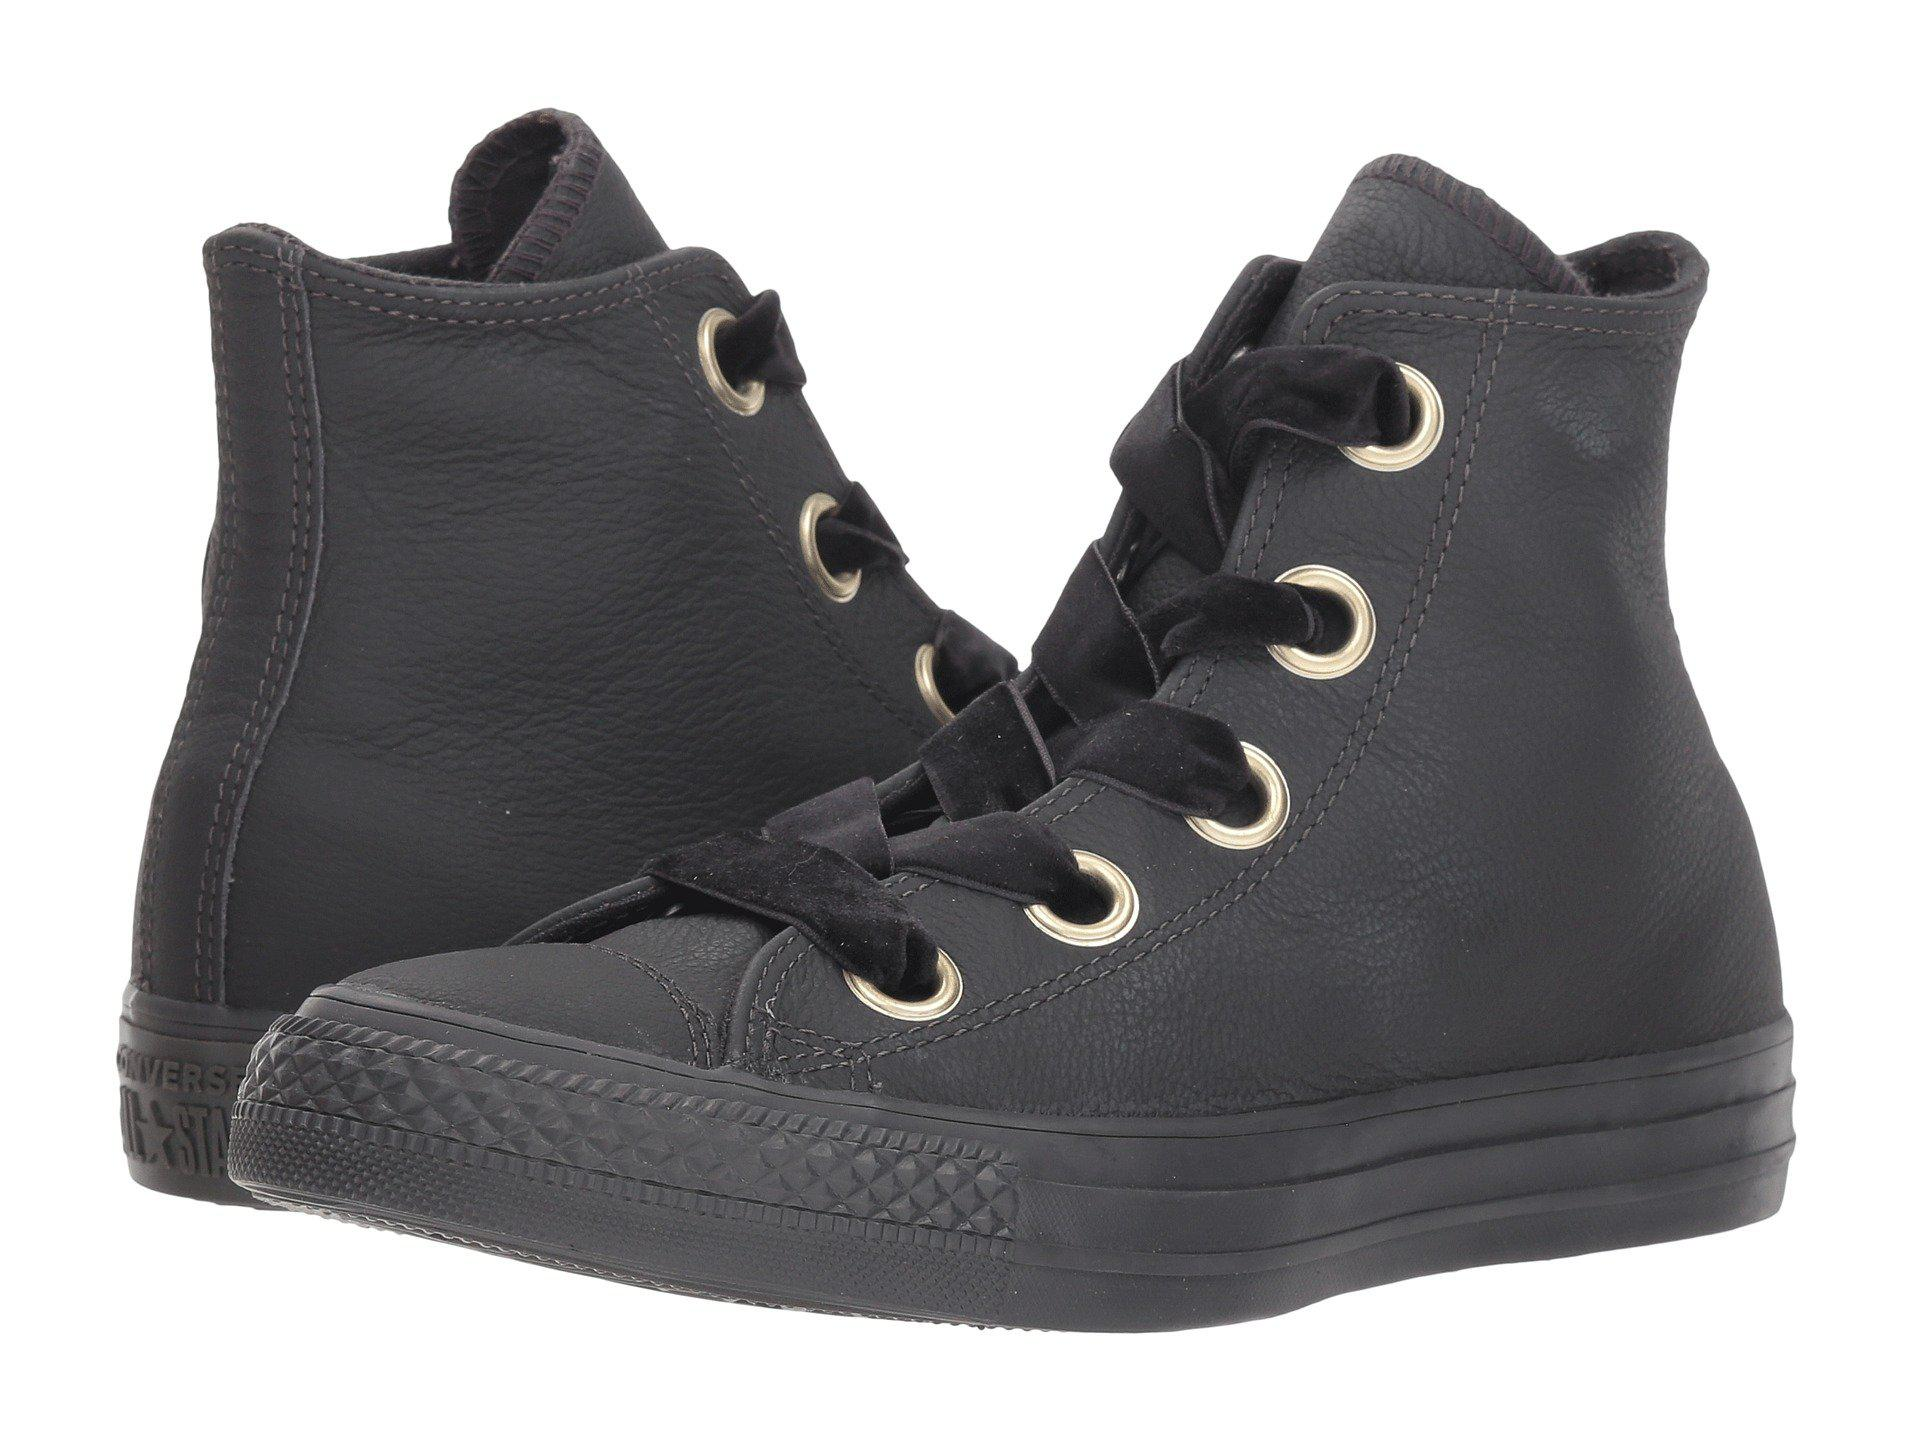 37e9135e28b2c8 Converse - Black Chuck Taylor All Star Big Eyelet - Leather Hi - Lyst. View  fullscreen